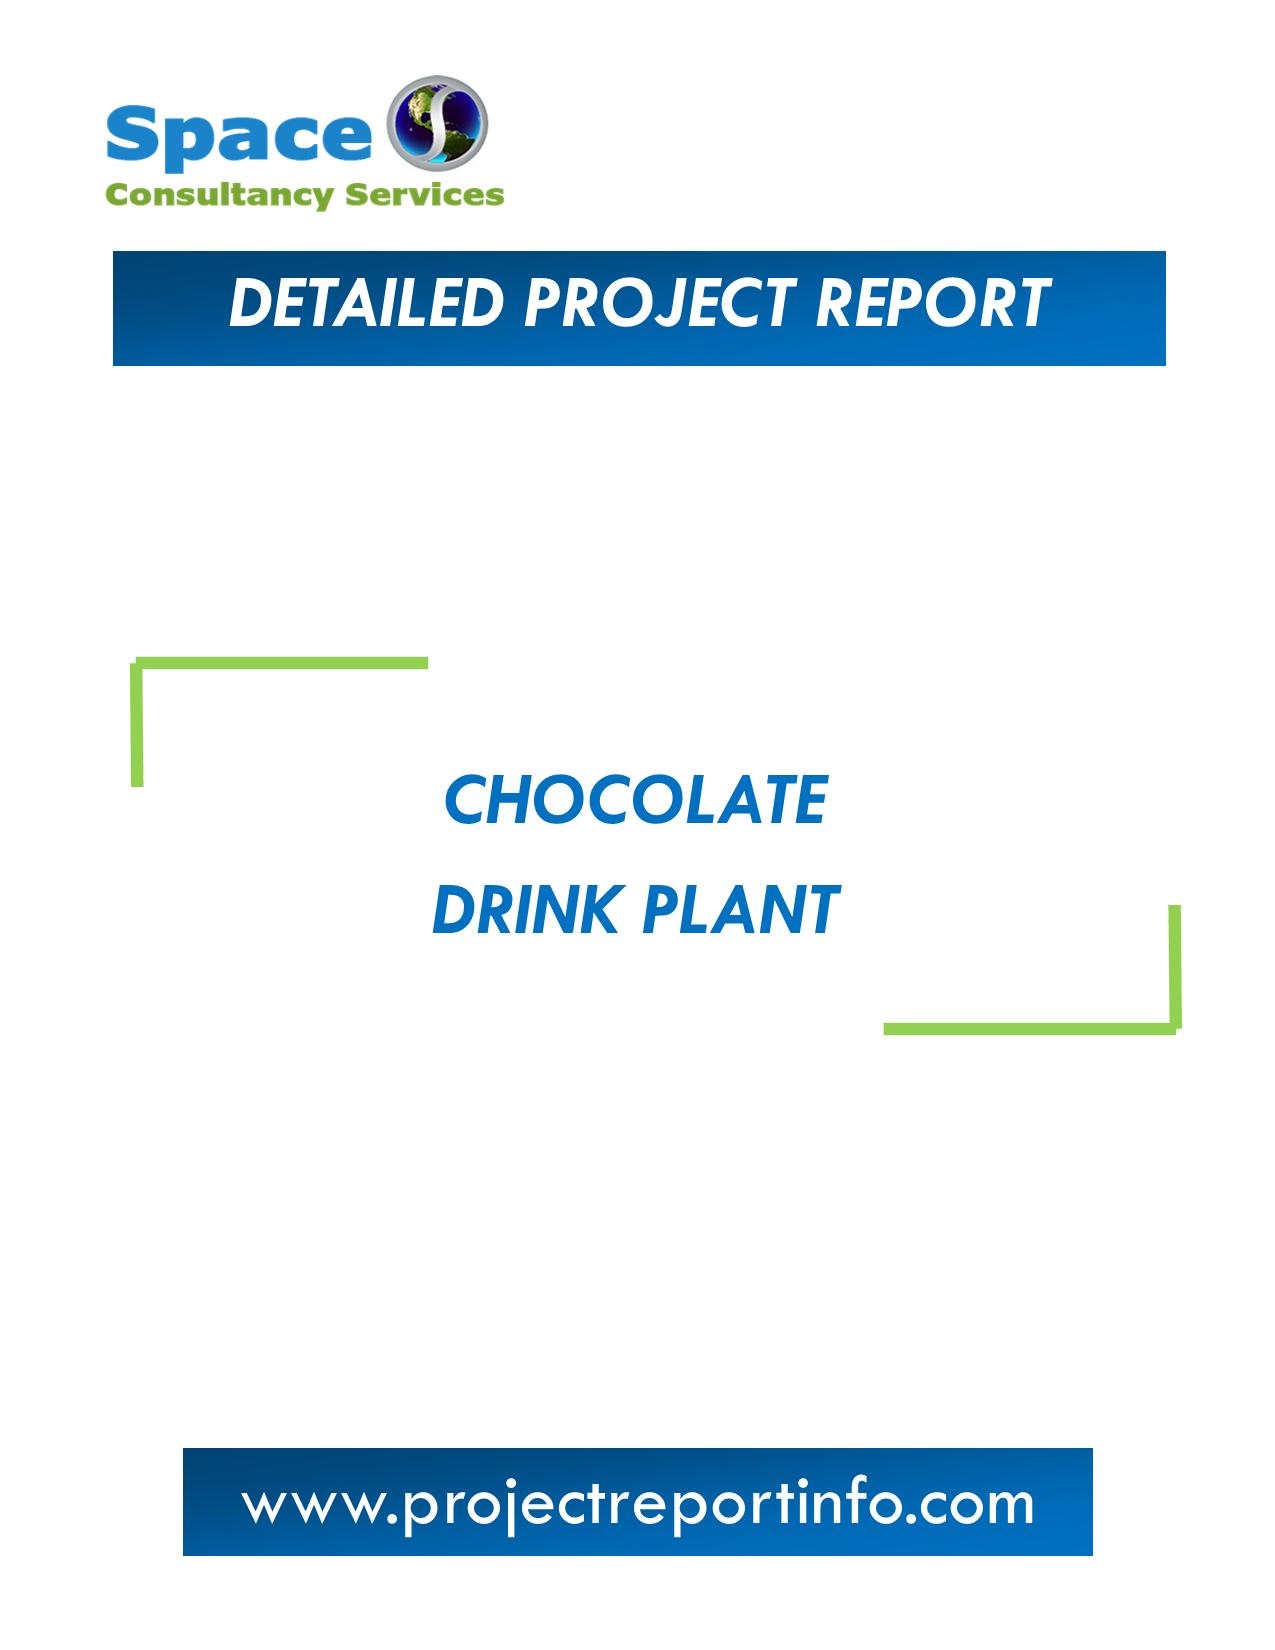 Project Report on Chocolate Drink Plant